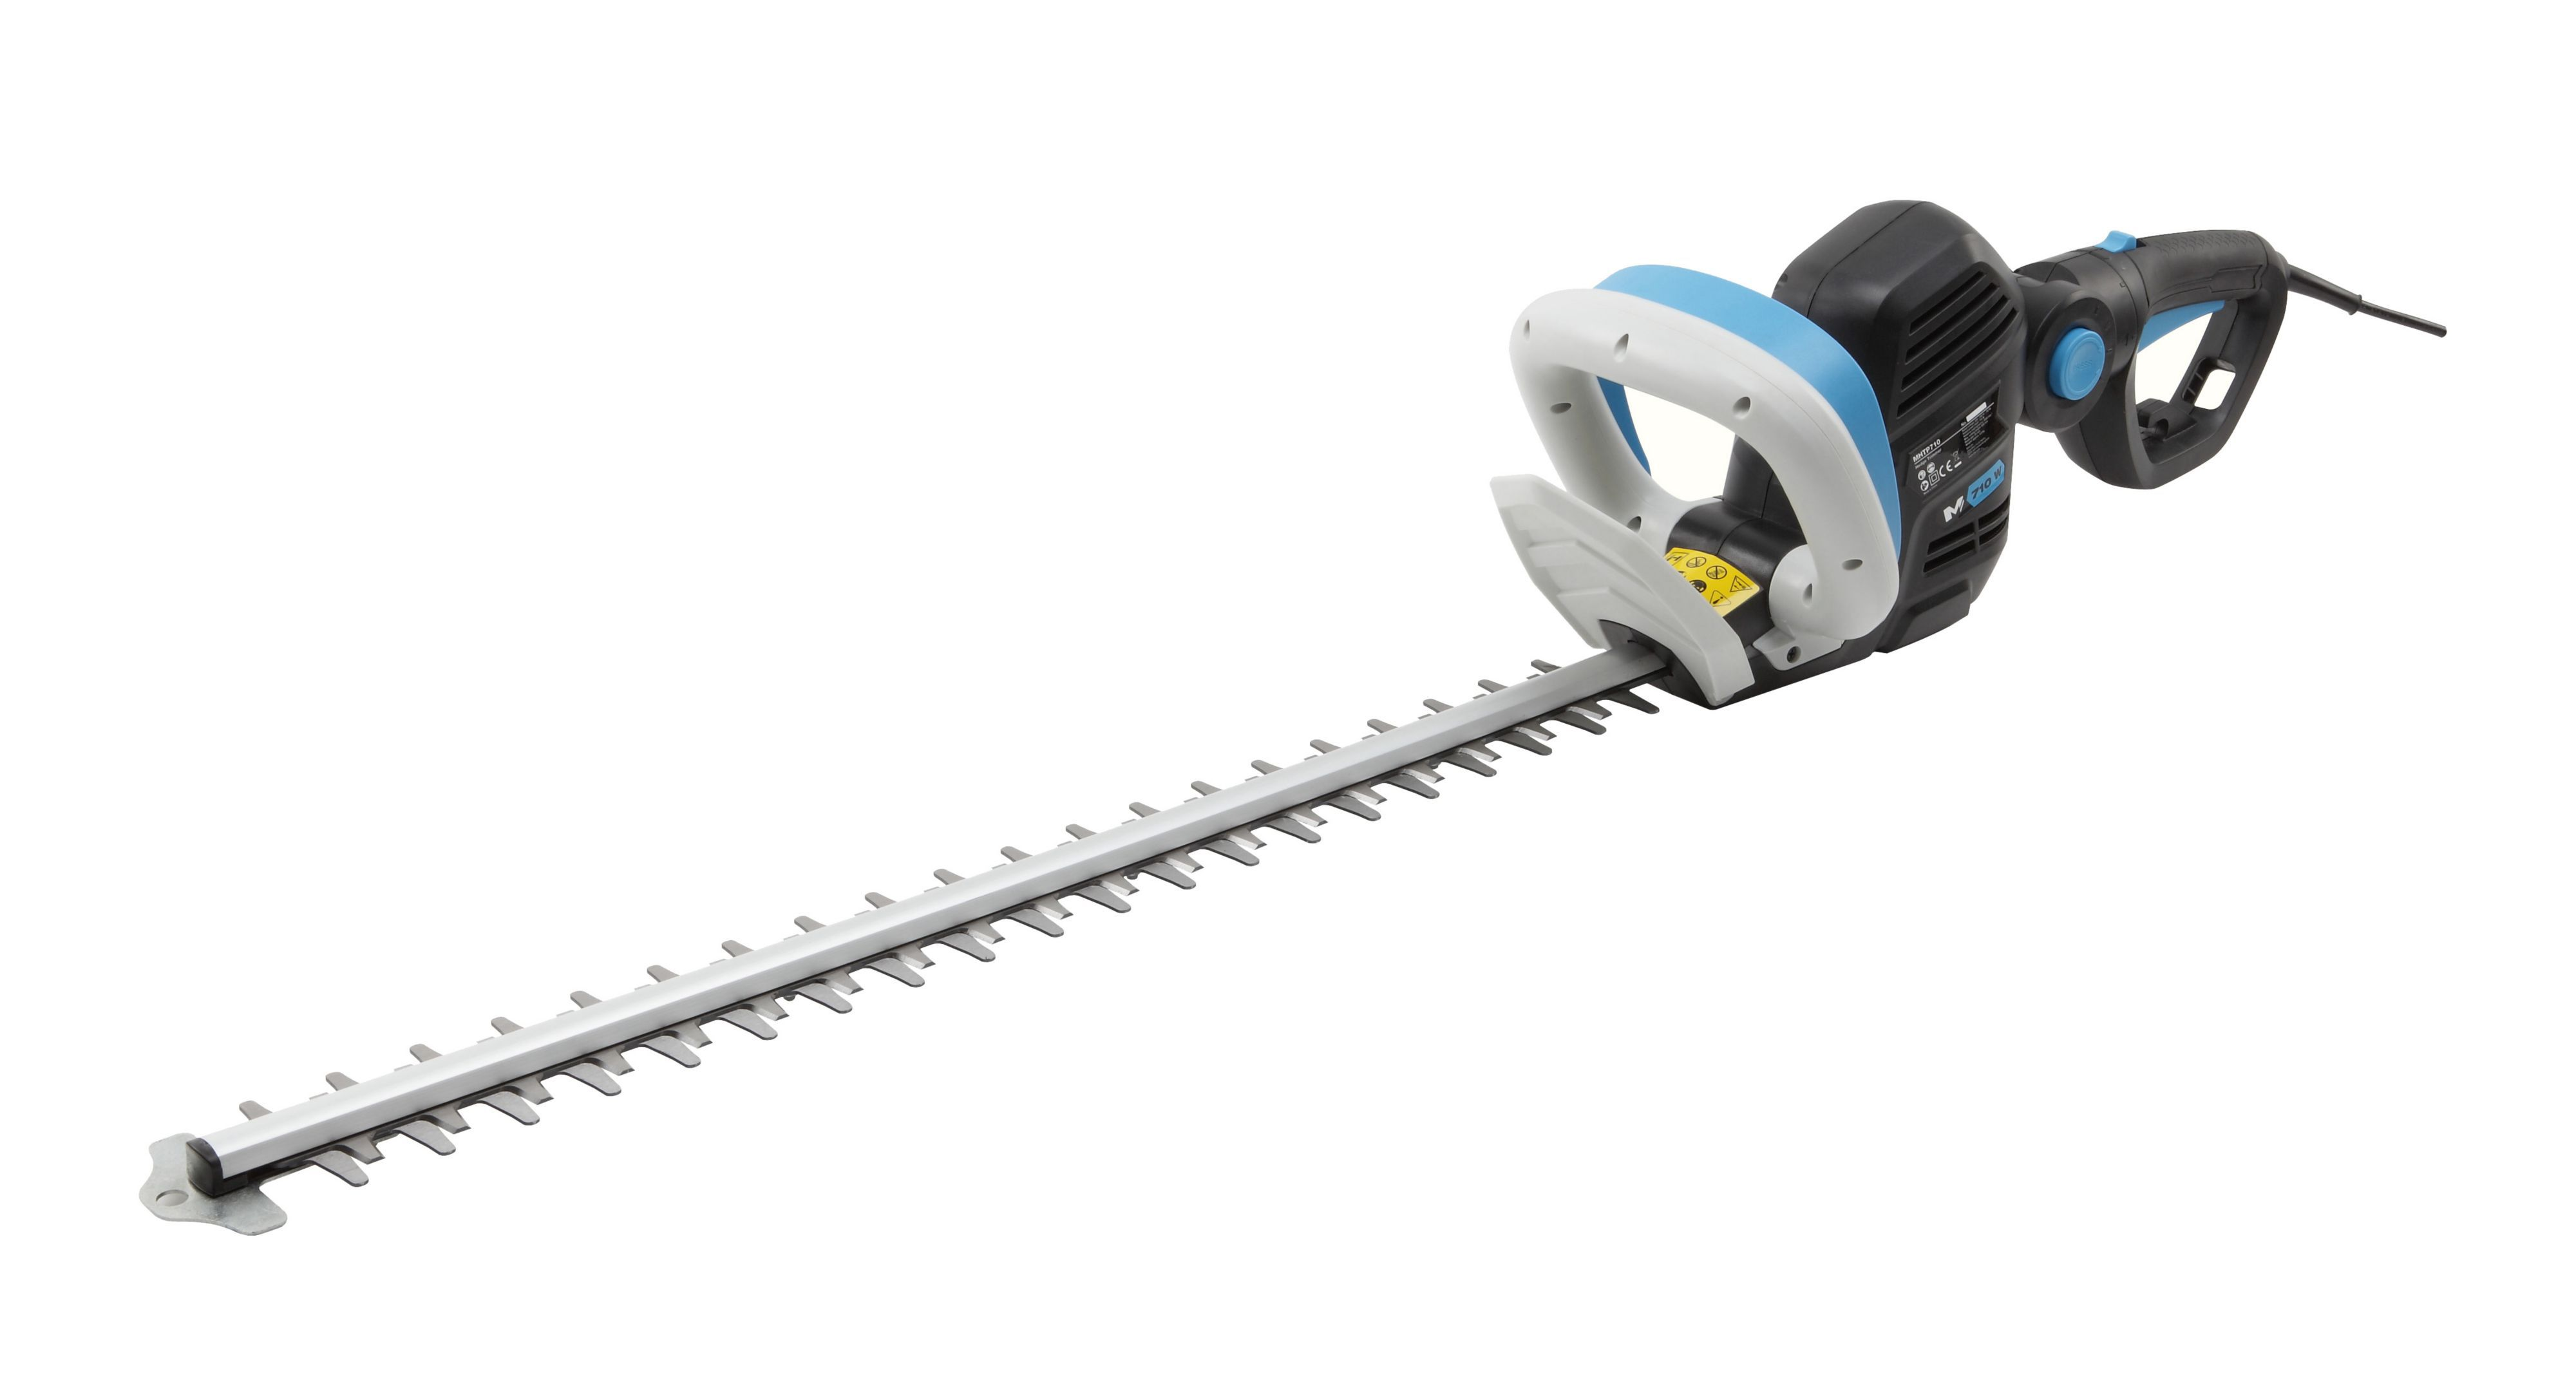 Mac Allister 710W Electric Hedge Trimmer MHTP710